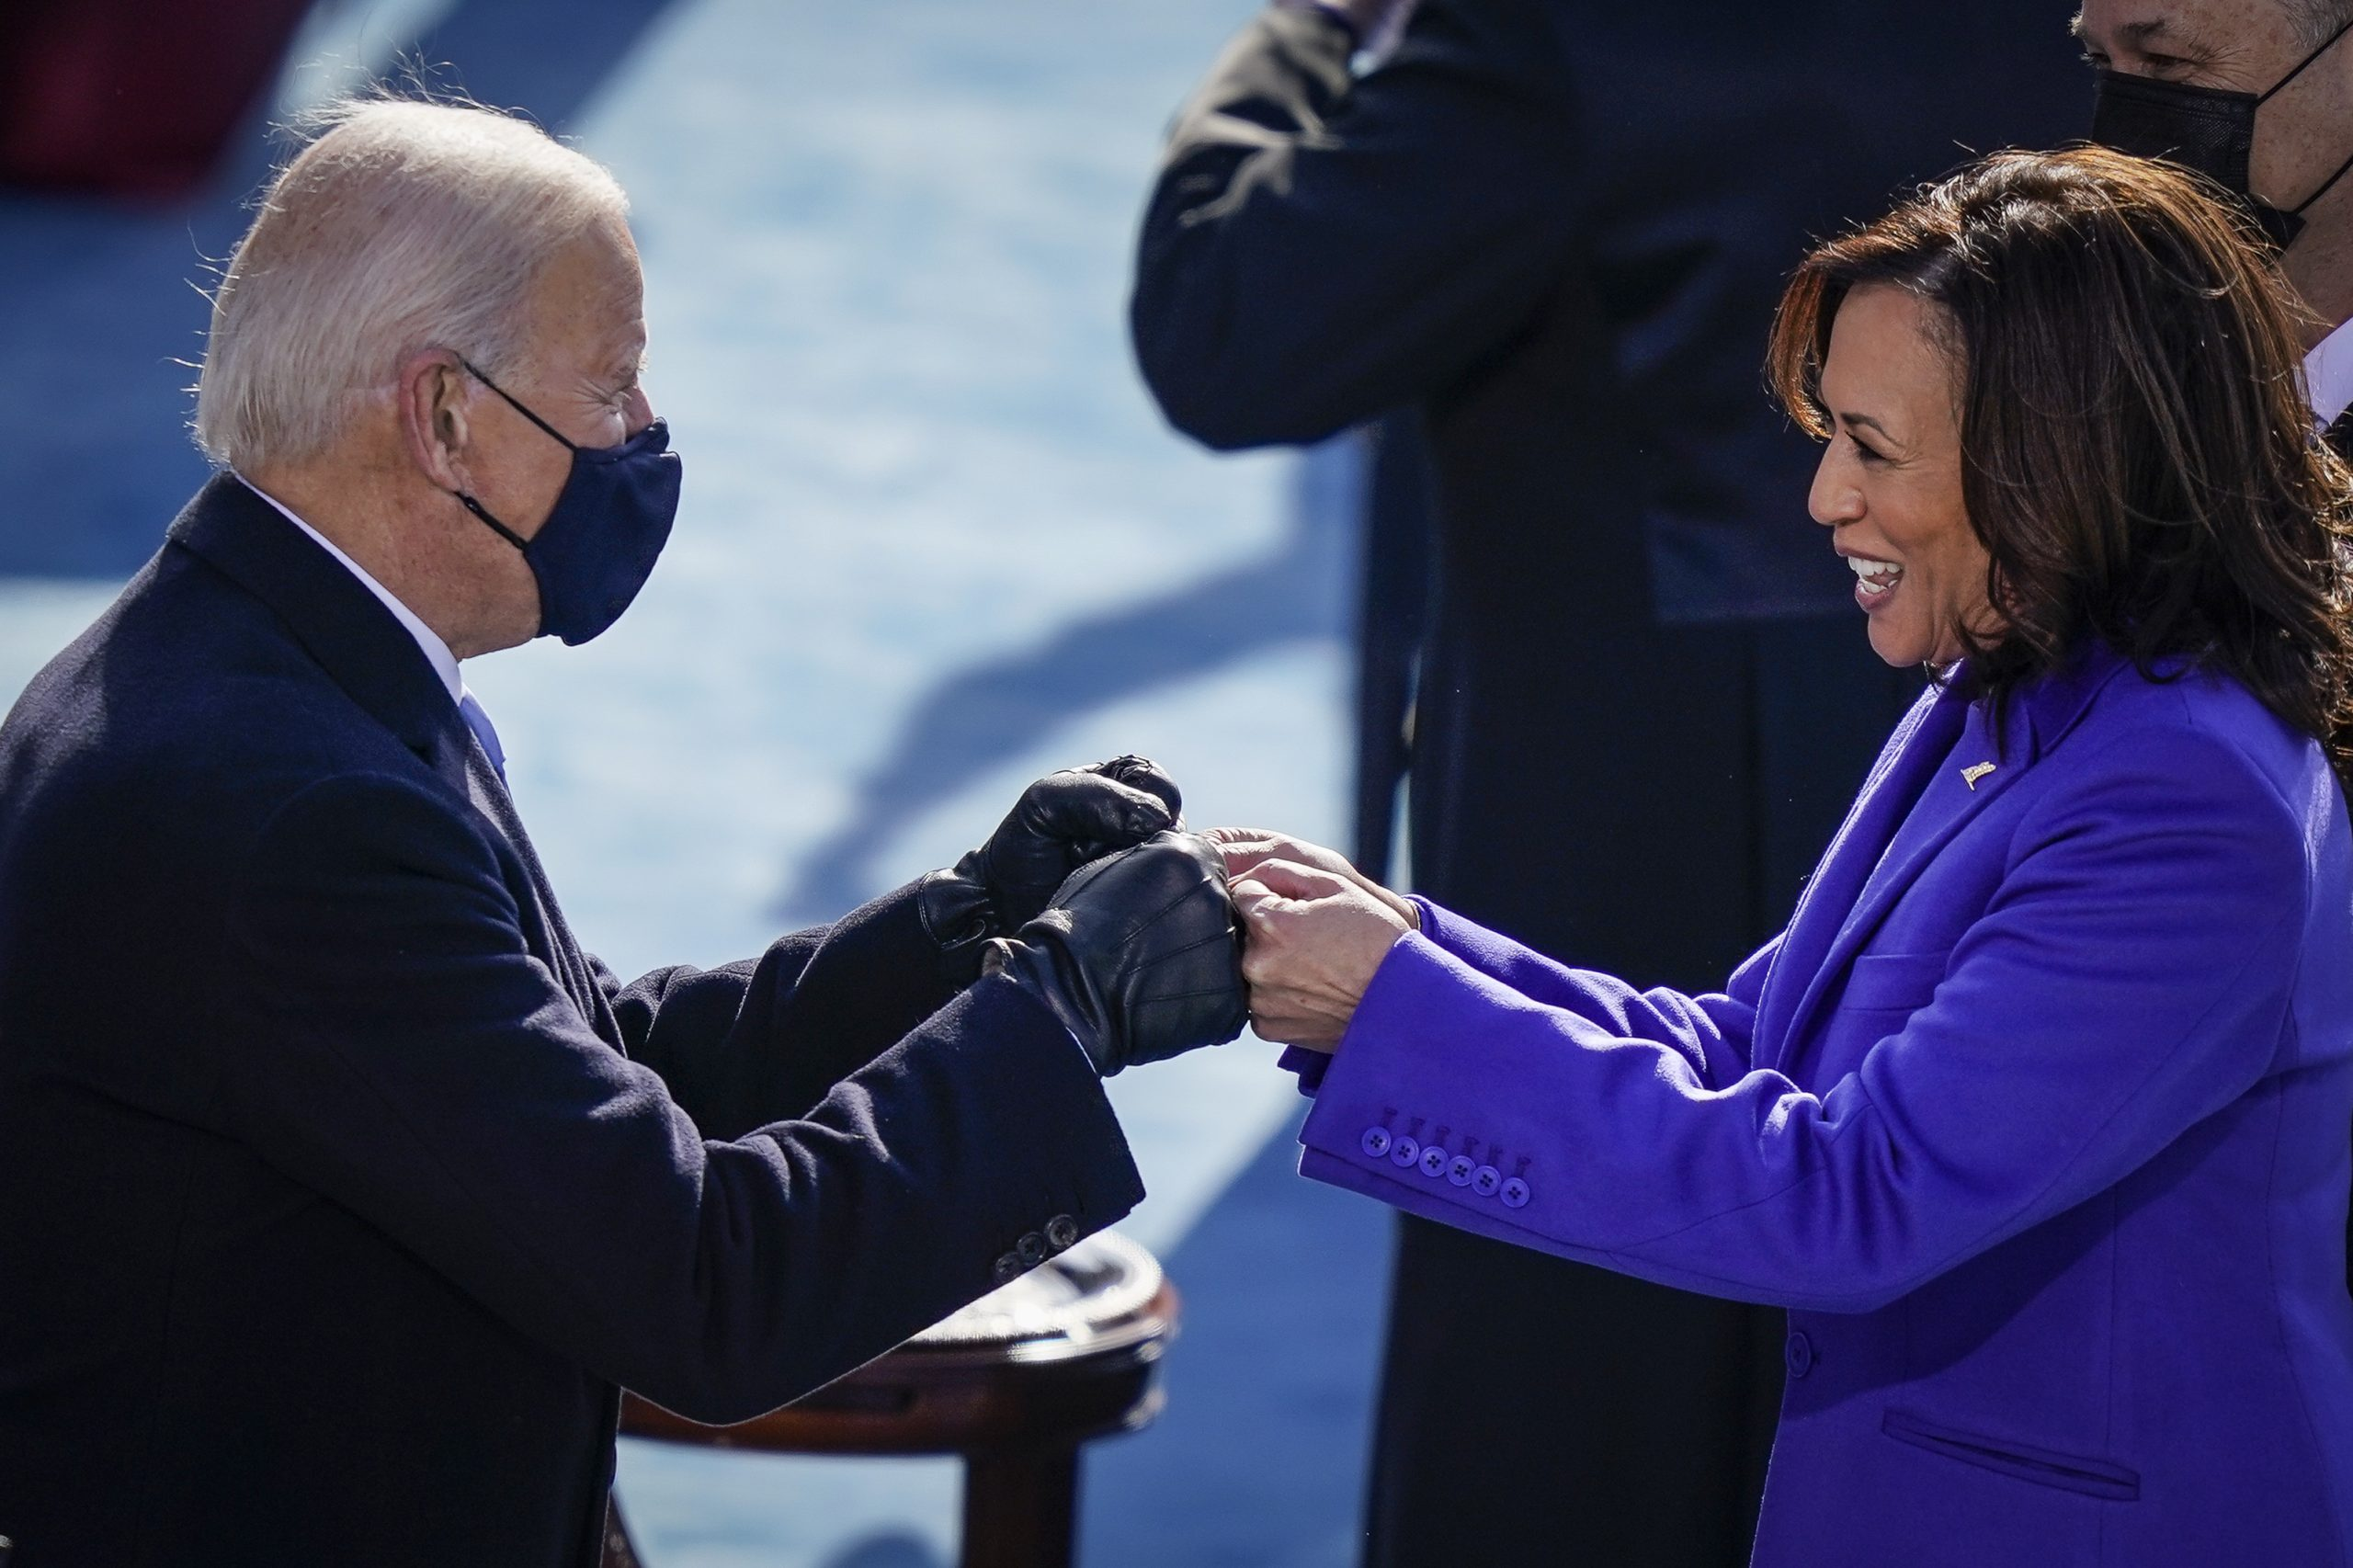 Biden orders tougher mask rules as part of overhauled COVID-19 strategy